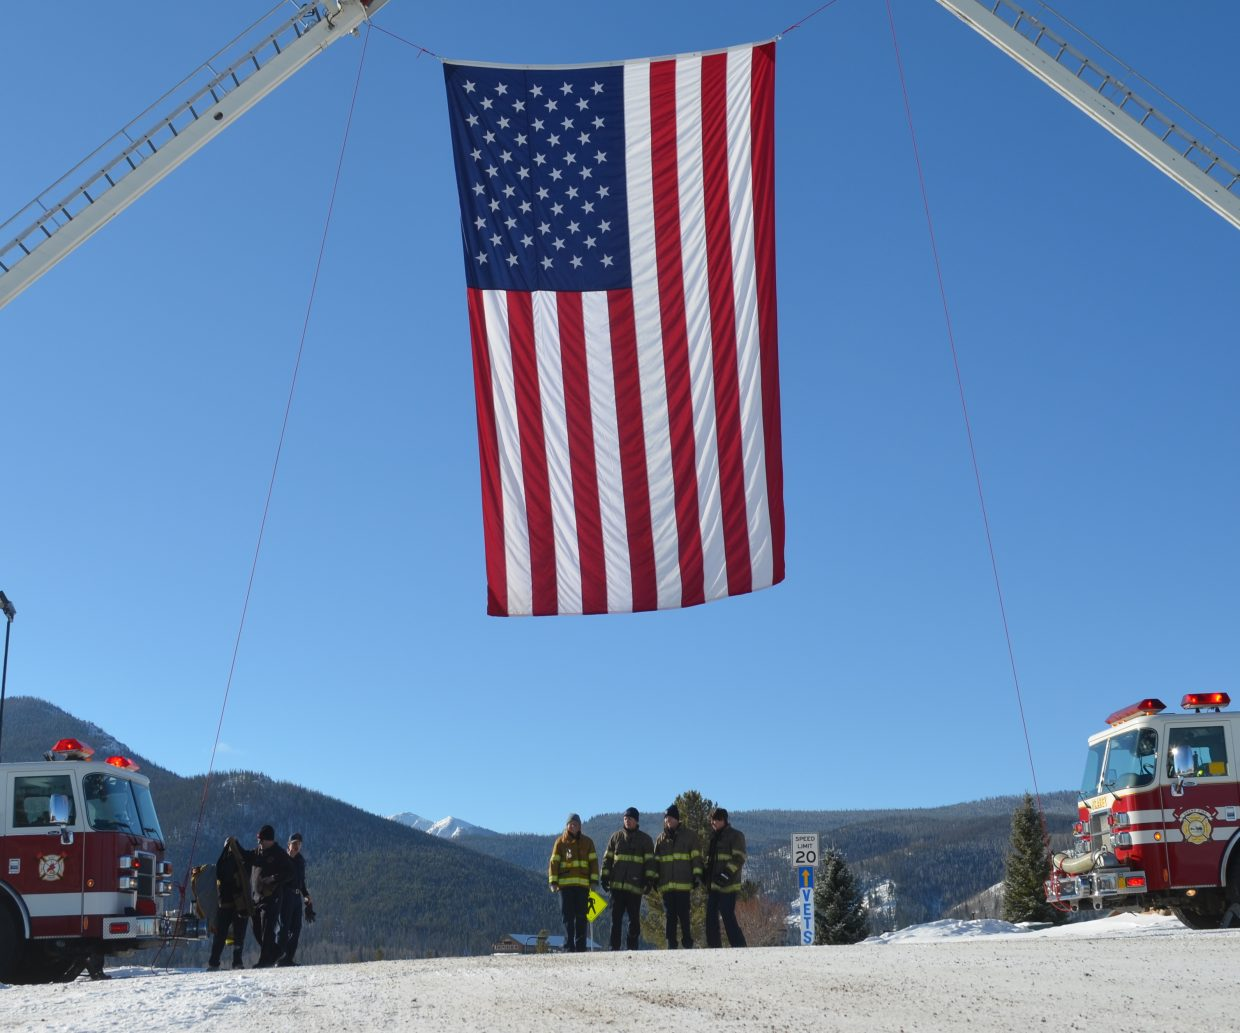 Local firefighters stand underneath a massive flag draped between two fire engines at the entrance to YMCA Snow Mountain Ranch where Monday's Veterans Day ceremonies were held.